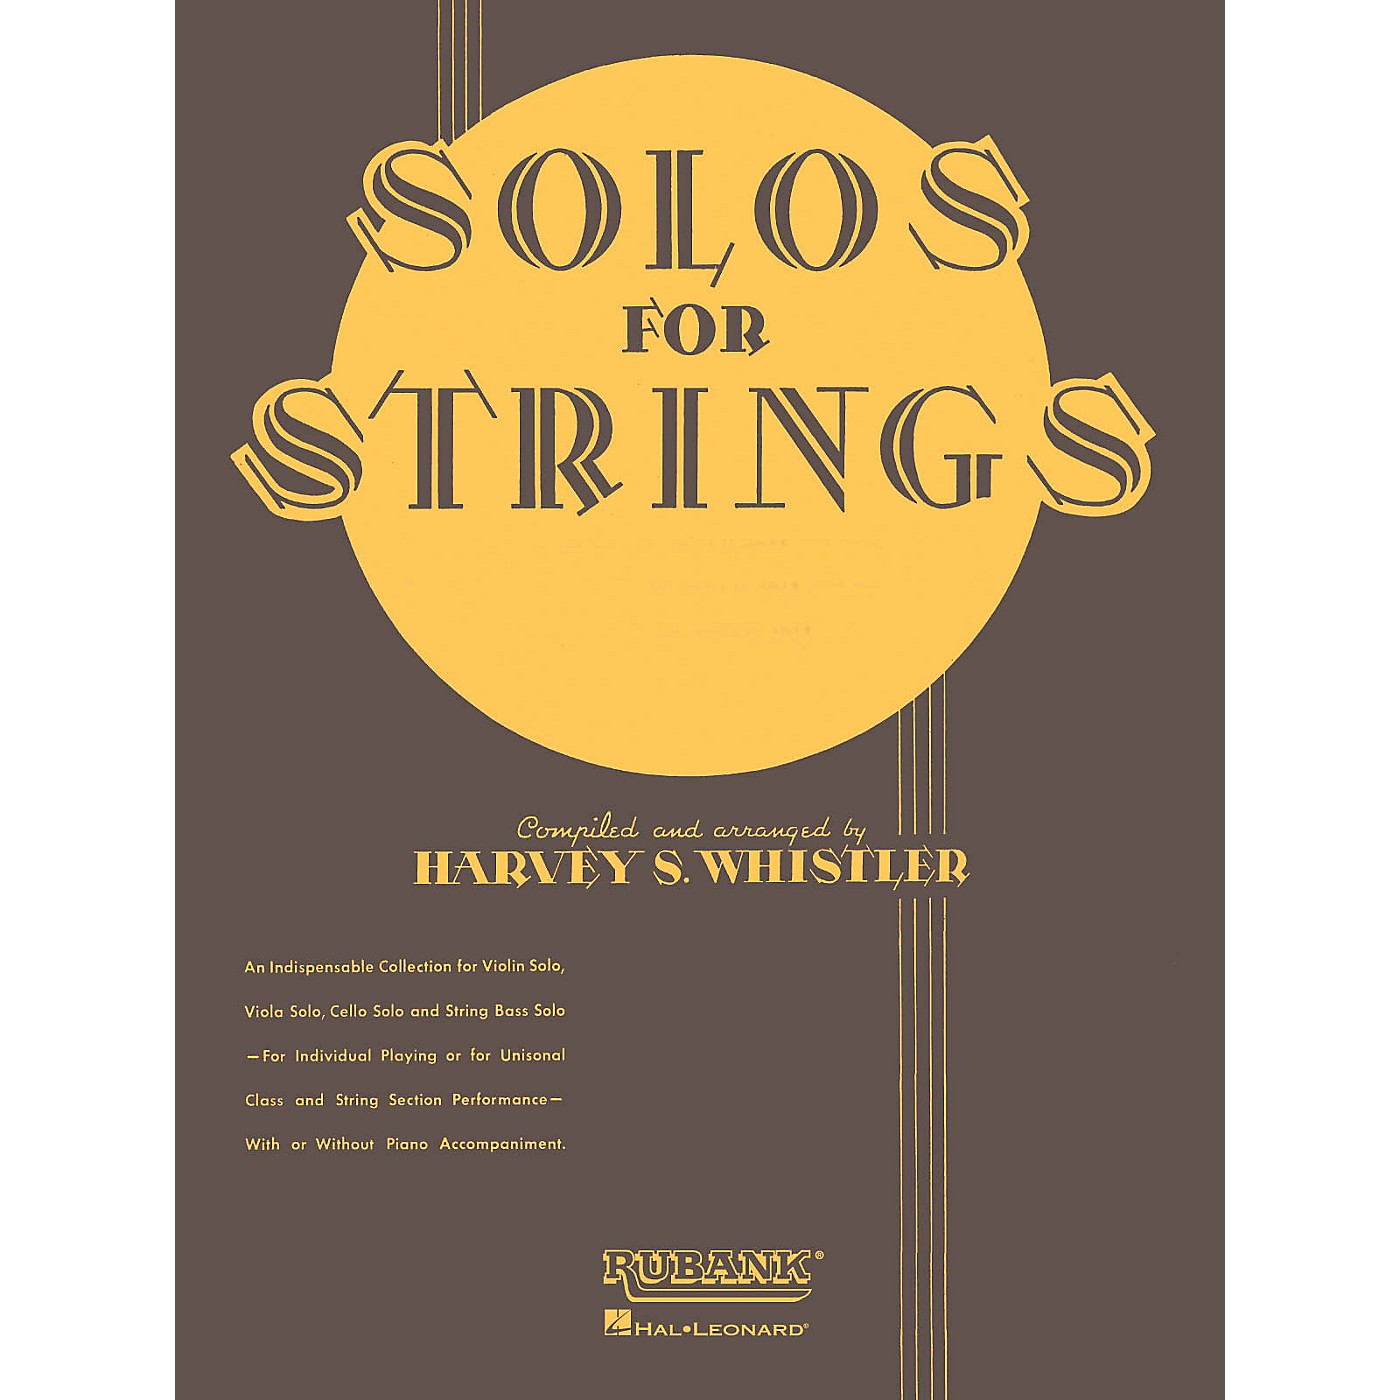 Rubank Publications Solos For Strings - Violin Solo (First Position) Rubank Solo Collection Series by Harvey S. Whistler thumbnail